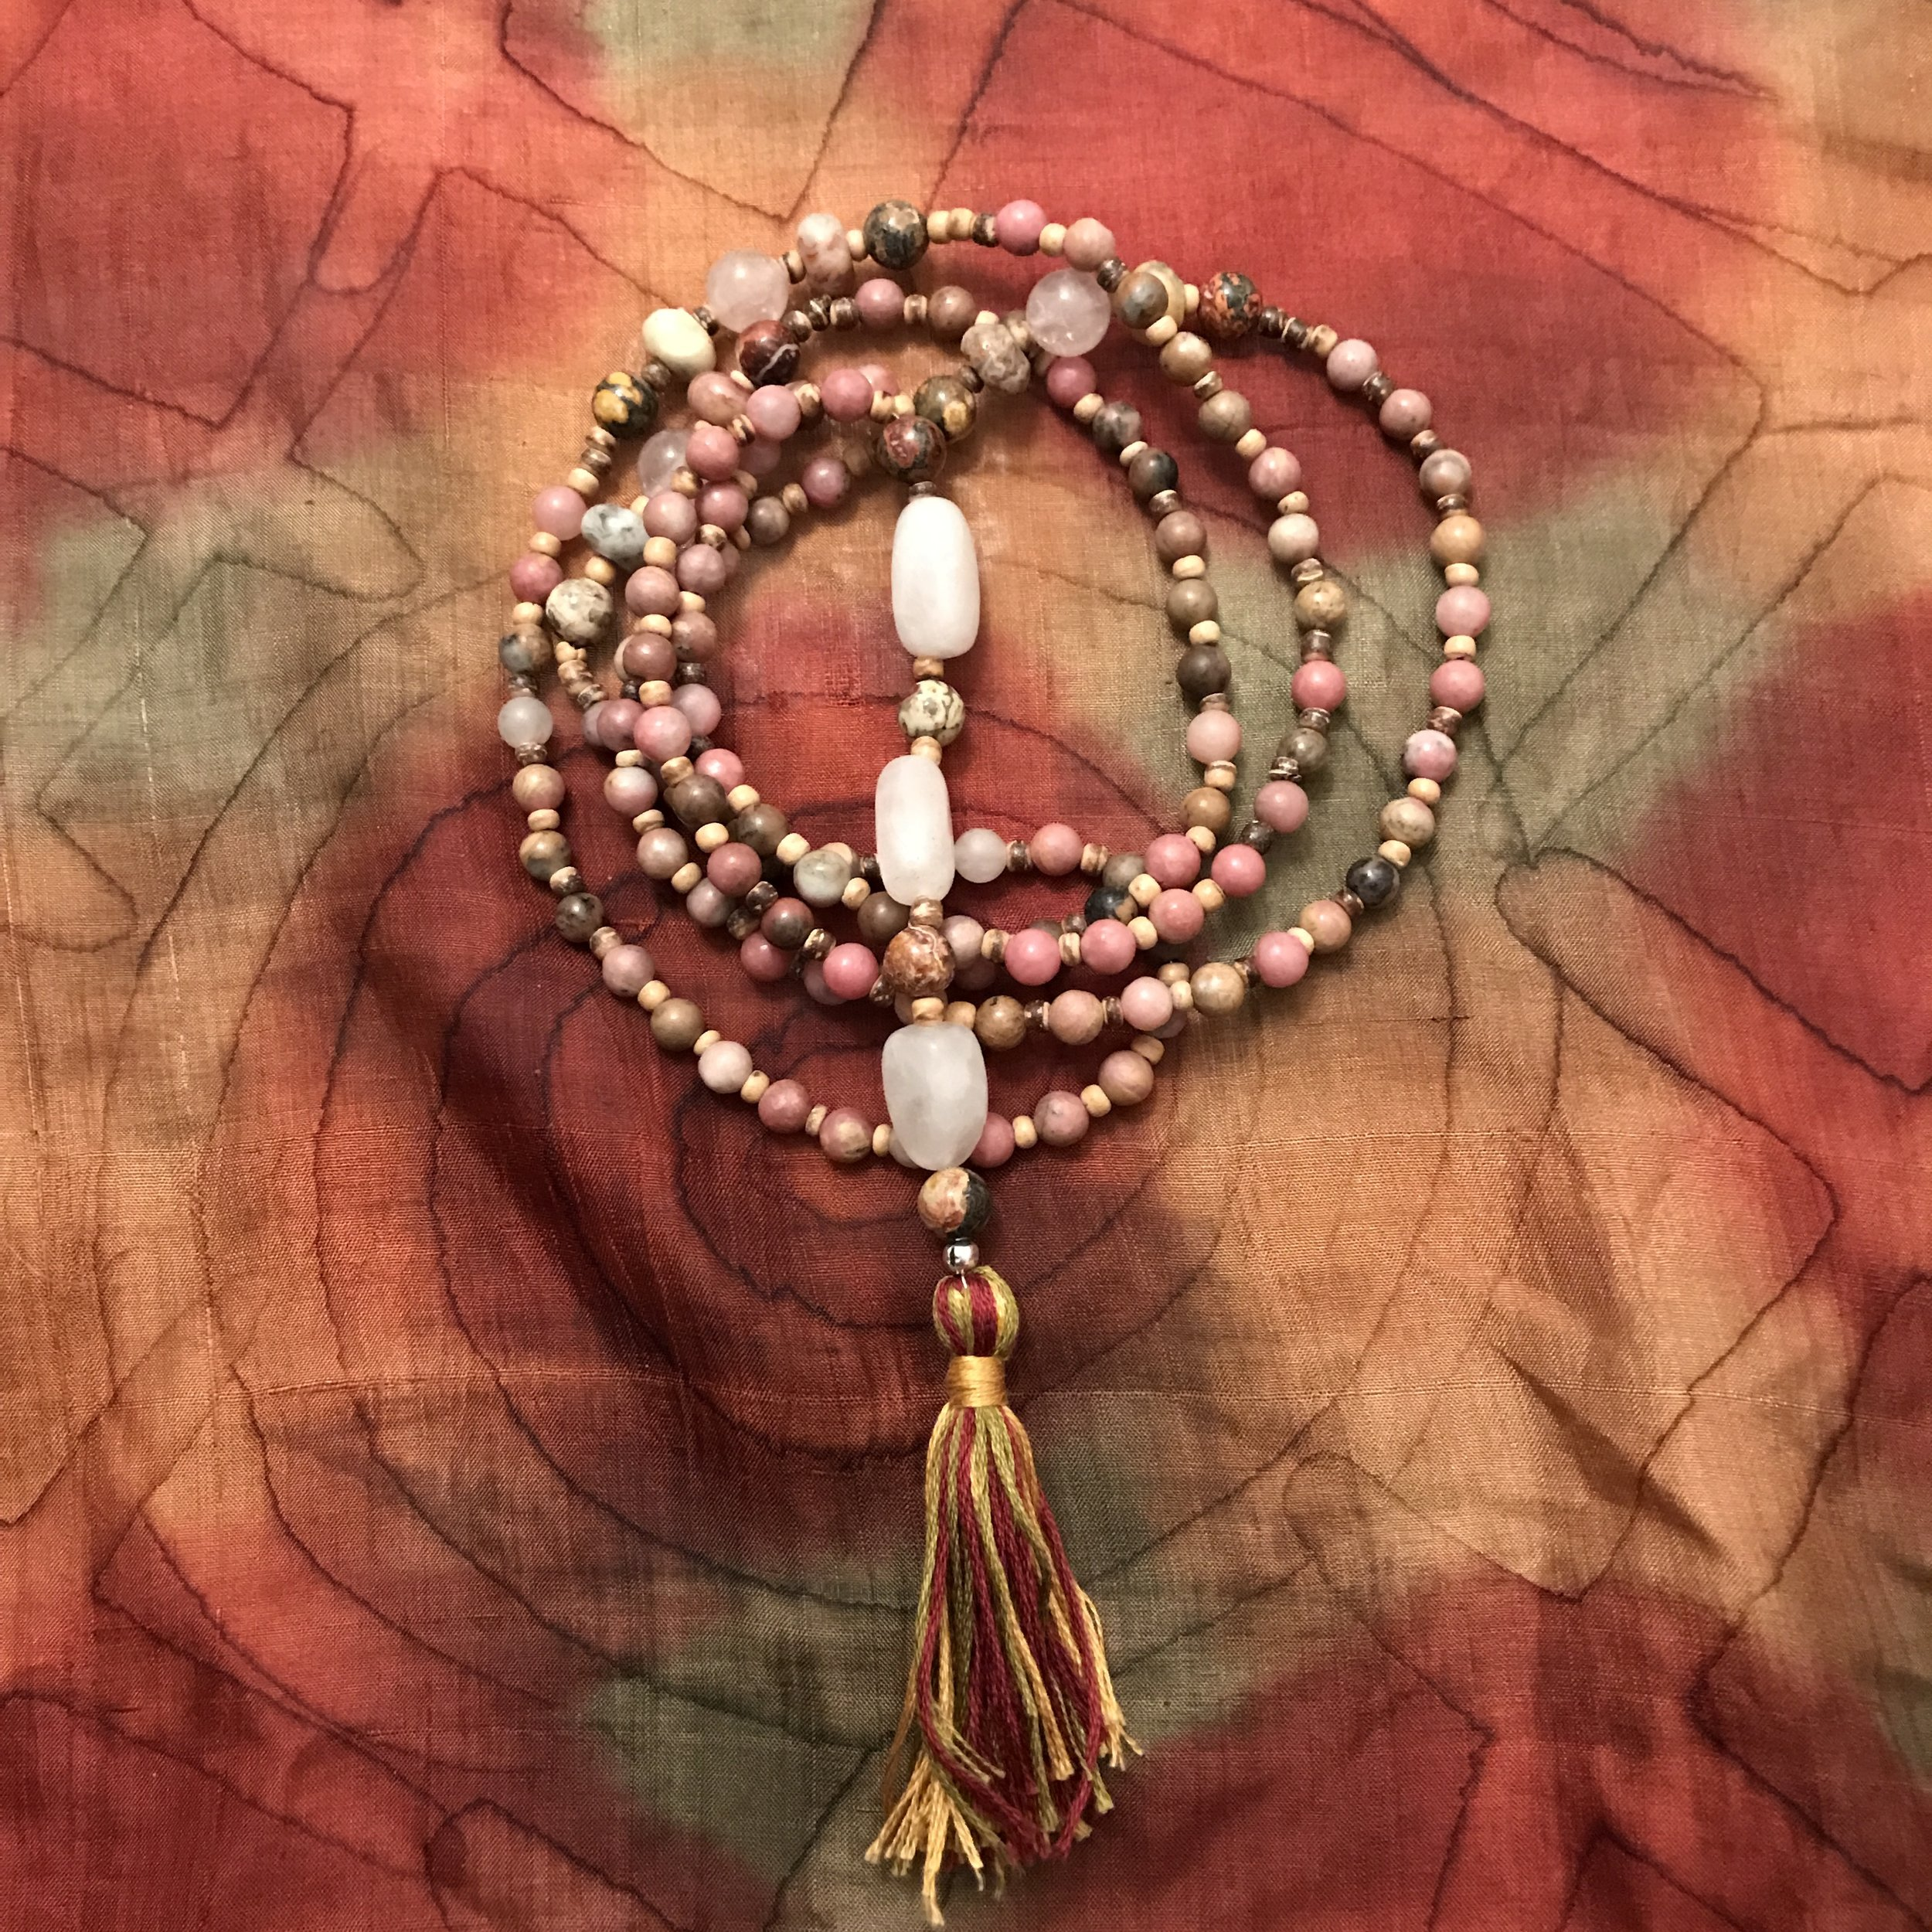 Open Heart Mala fashioned for Rob Bell. Materials used are Rhodonite Jasper, Jaguar Stone, Agate, Quartz, and Rose Quartz. 108 blessings were spoken over Rob during its creation.